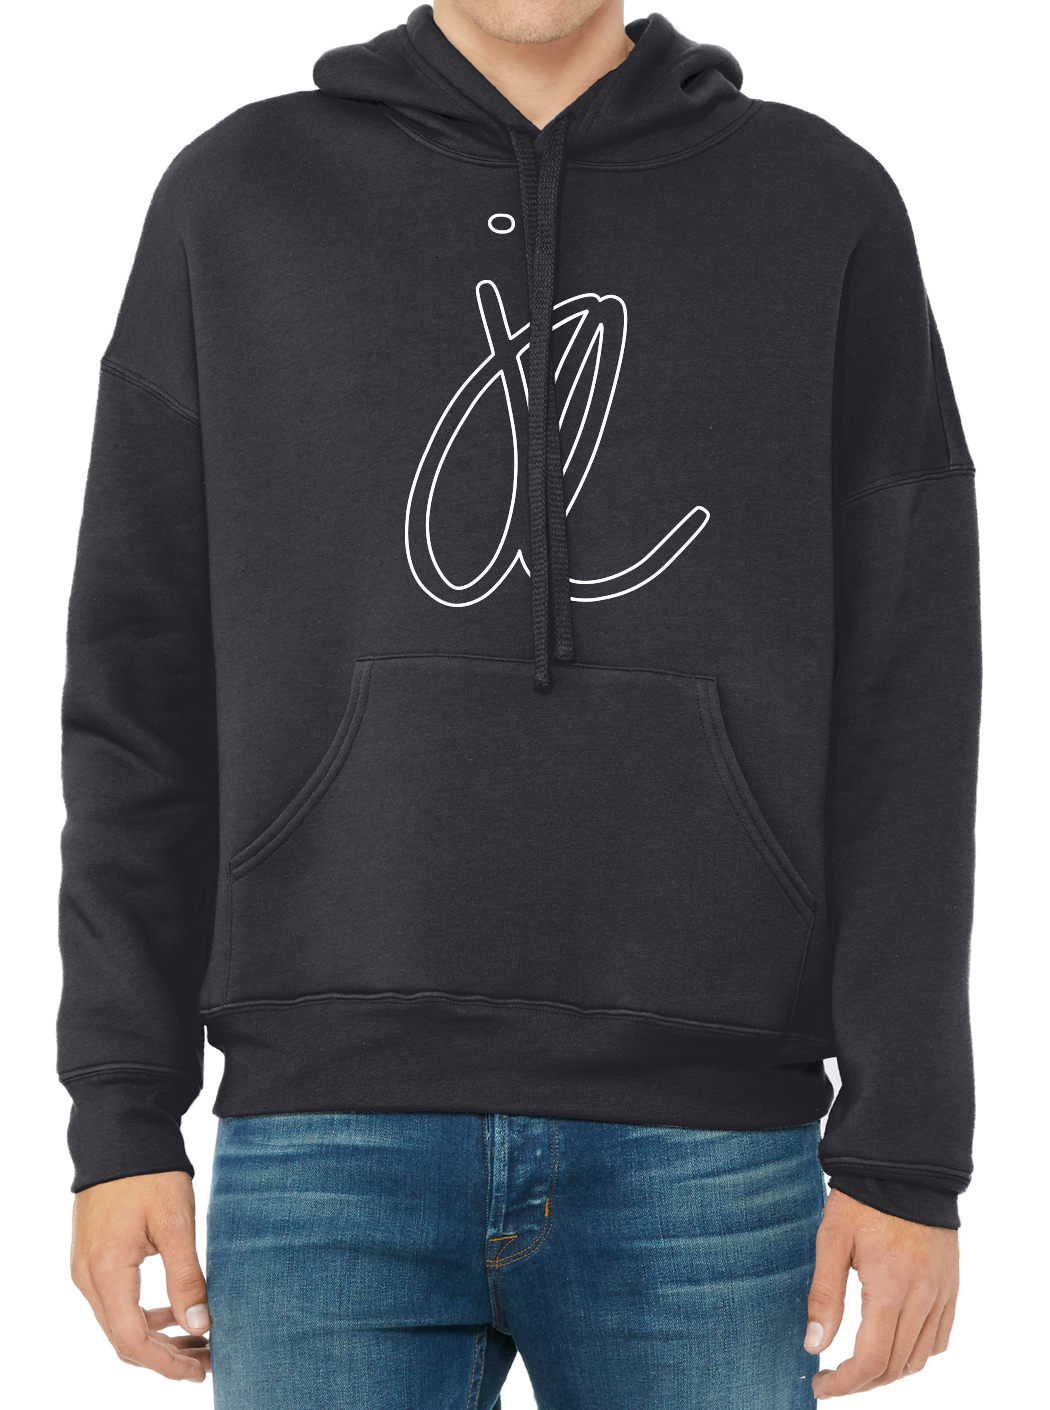 SIGNATURE LOGO Men's Fleece Pullover Hood (Unisex)